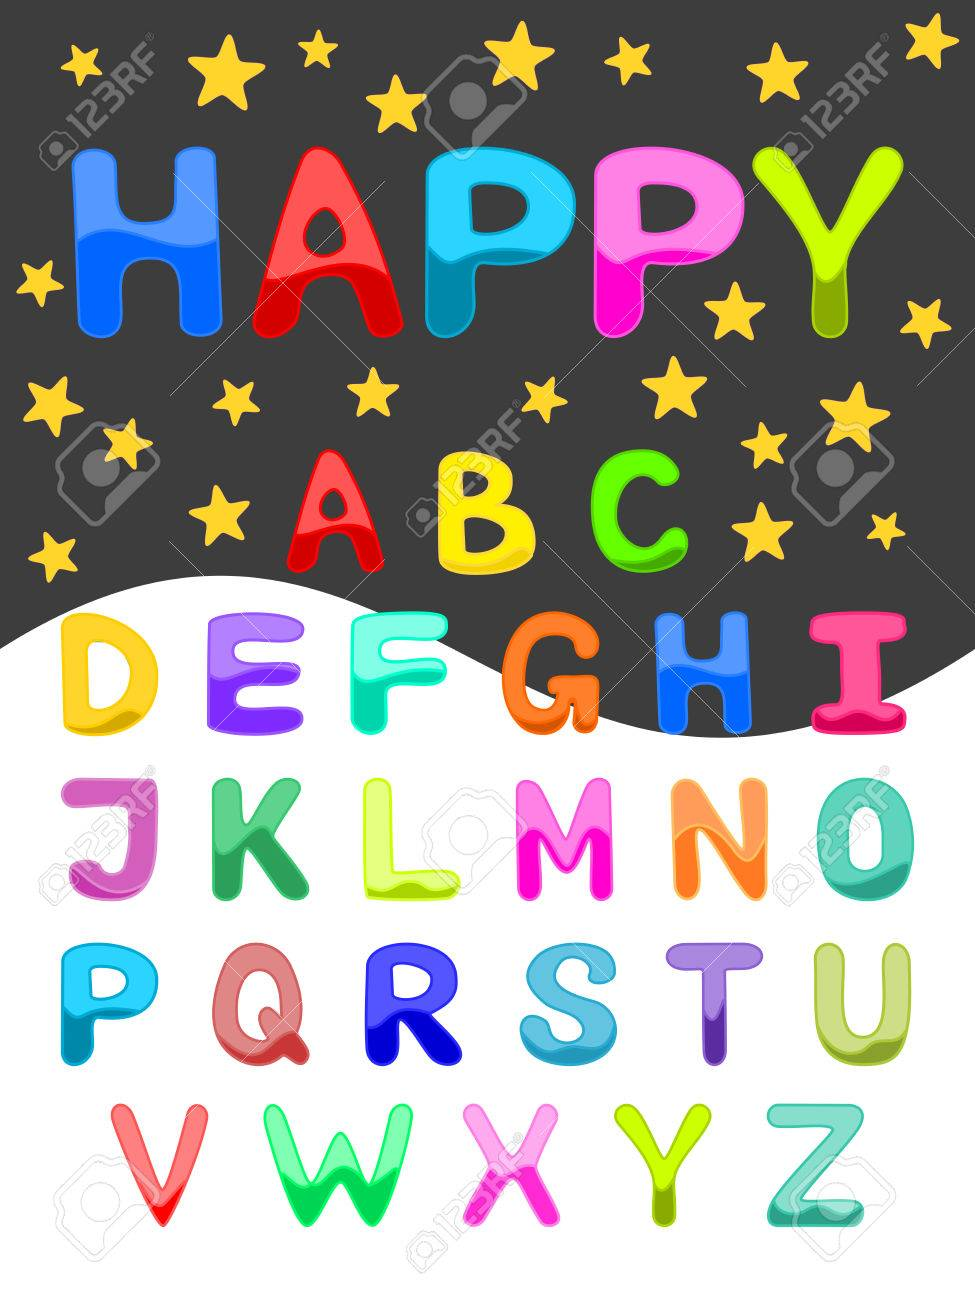 Colorful Alphabet Uppercase Font Set Of ABC Letters In Bright Colors Funny Cartoon On Starry